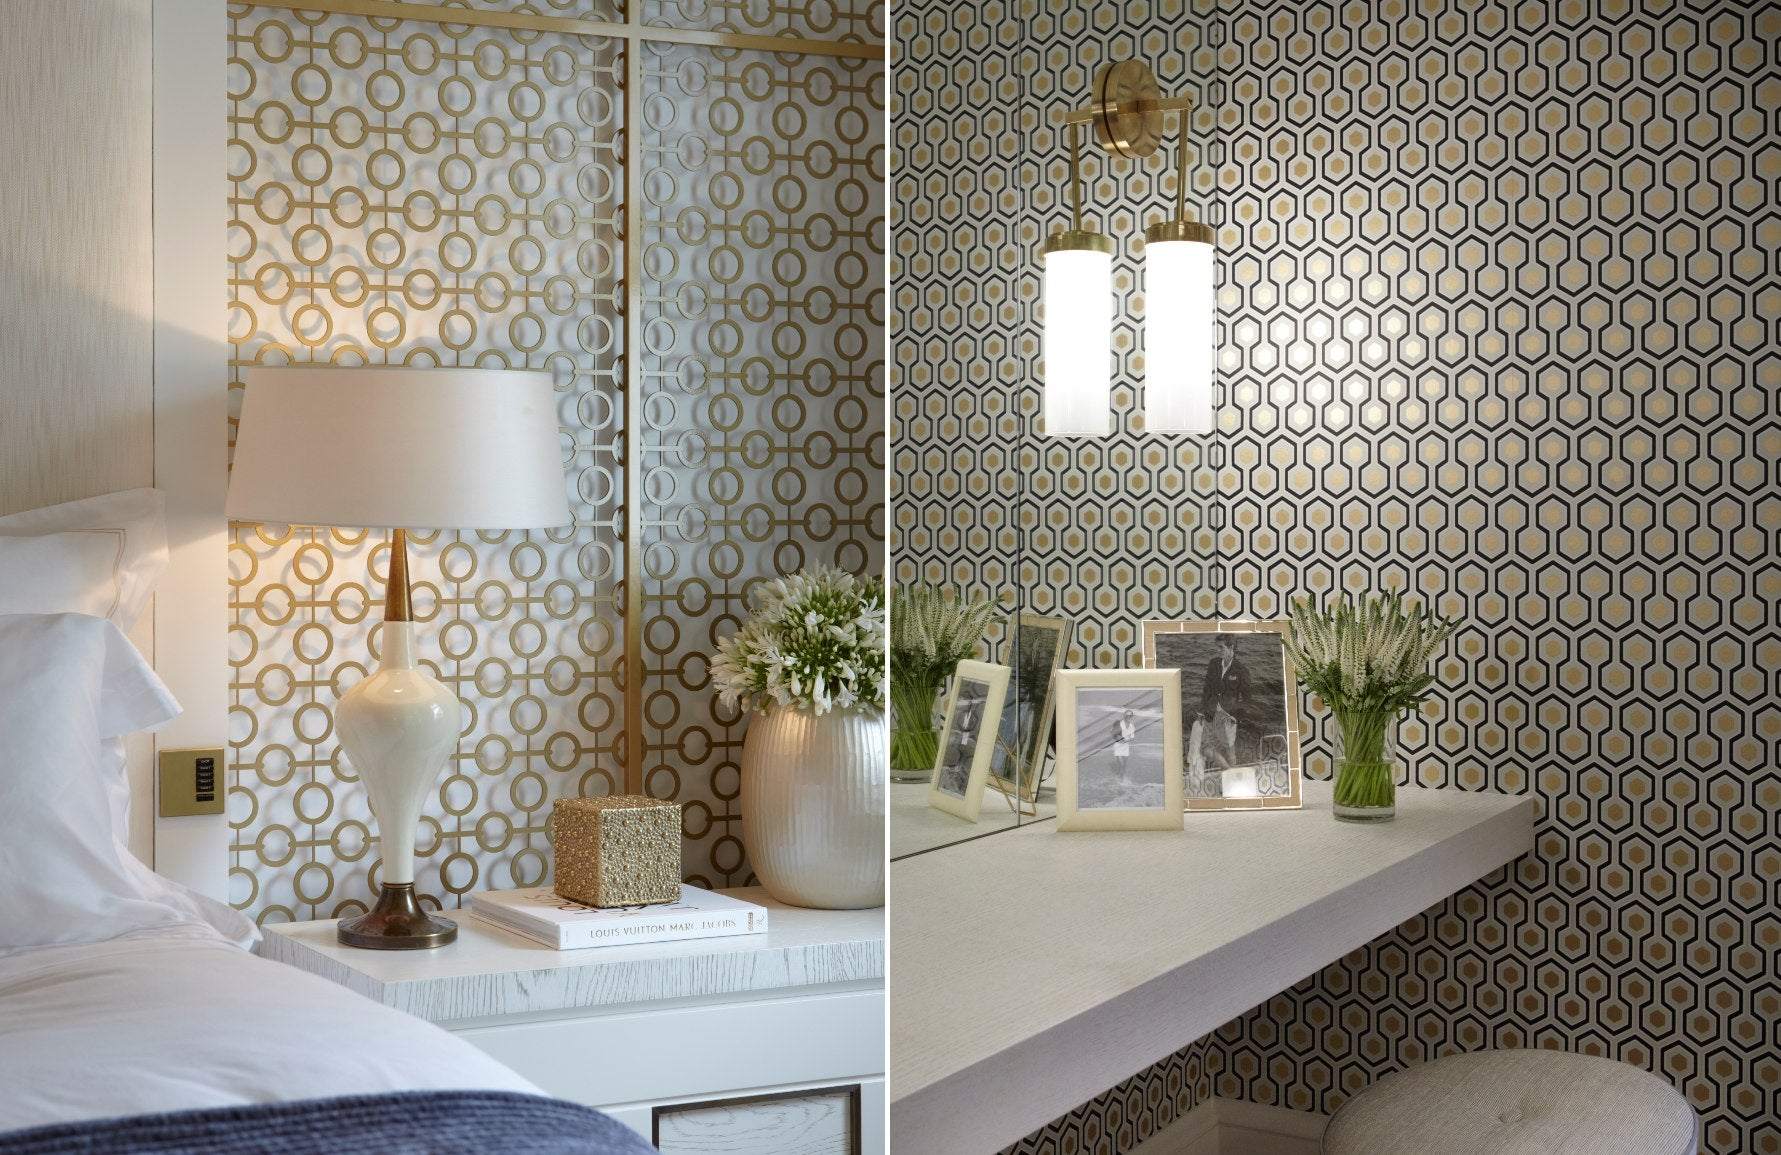 Forms of Geometric Shapes & Patterns In Interior Design | Circles & Hexagons | LuxDeco.com Style Guide